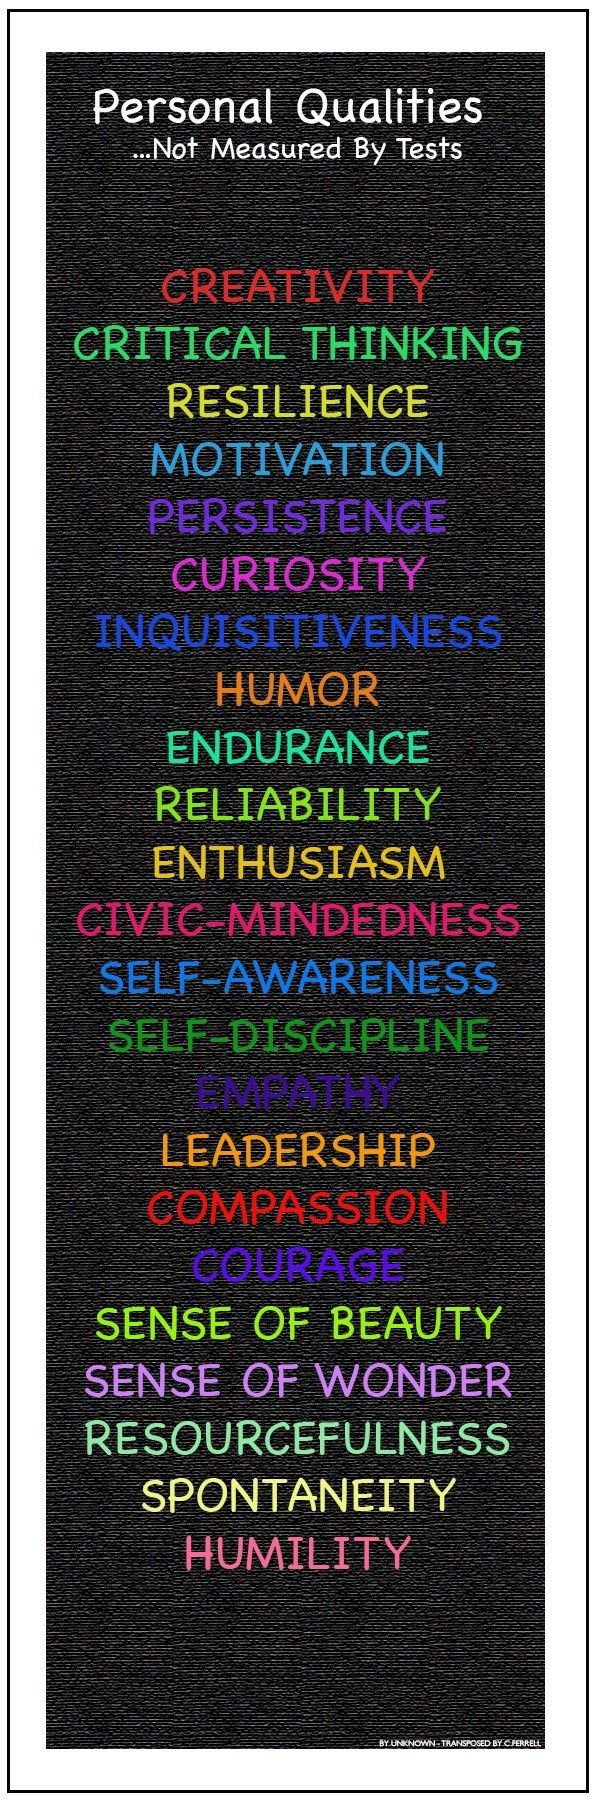 Personal Qualities.. Not Measured by Tests. This was recreated from a post found here.